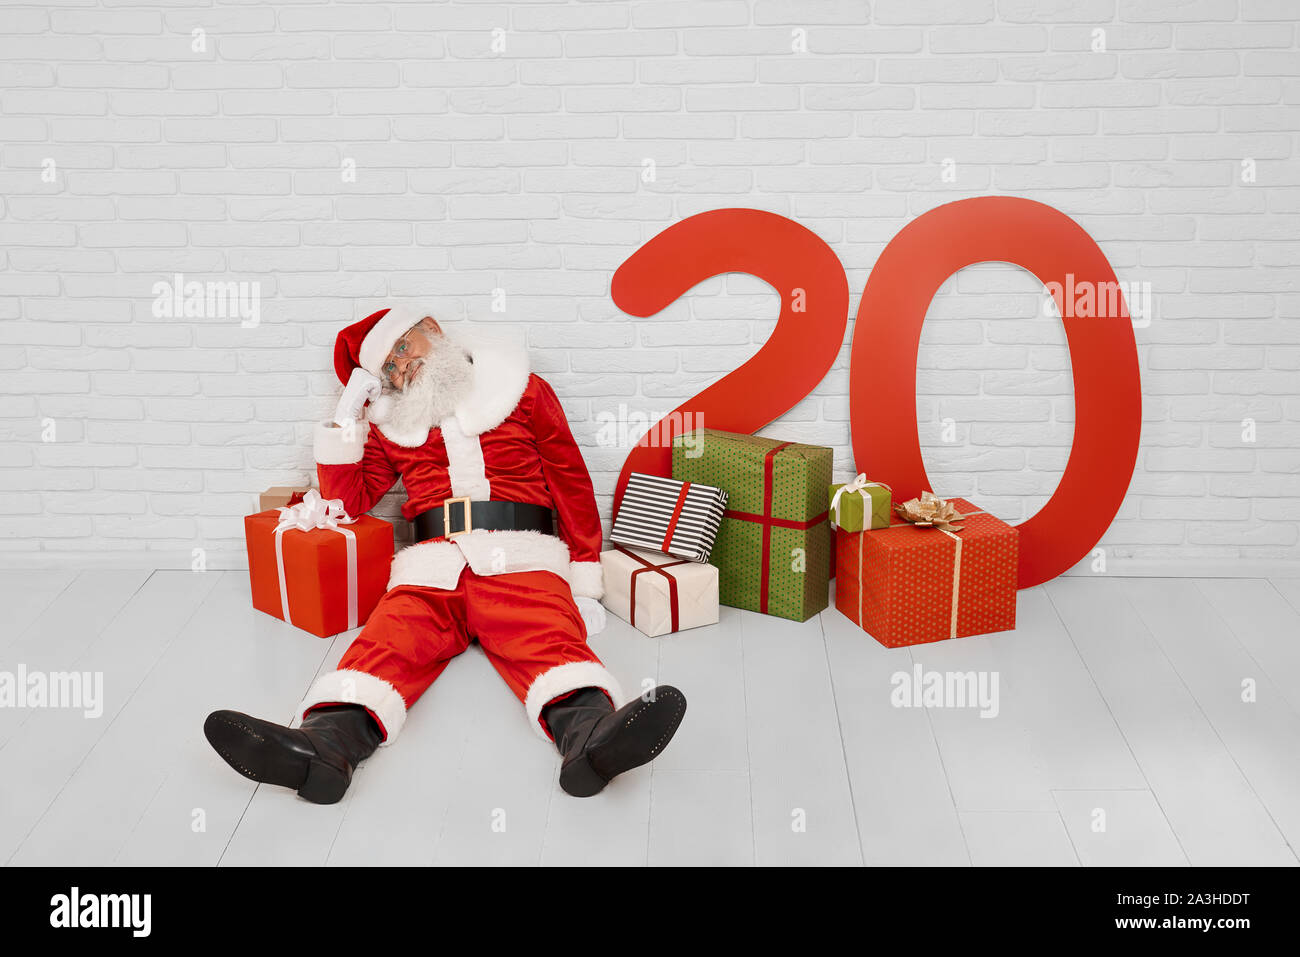 2020 Big Christmas Box Gifts Tired mature Santa Claus sitting on white floor near red big gift